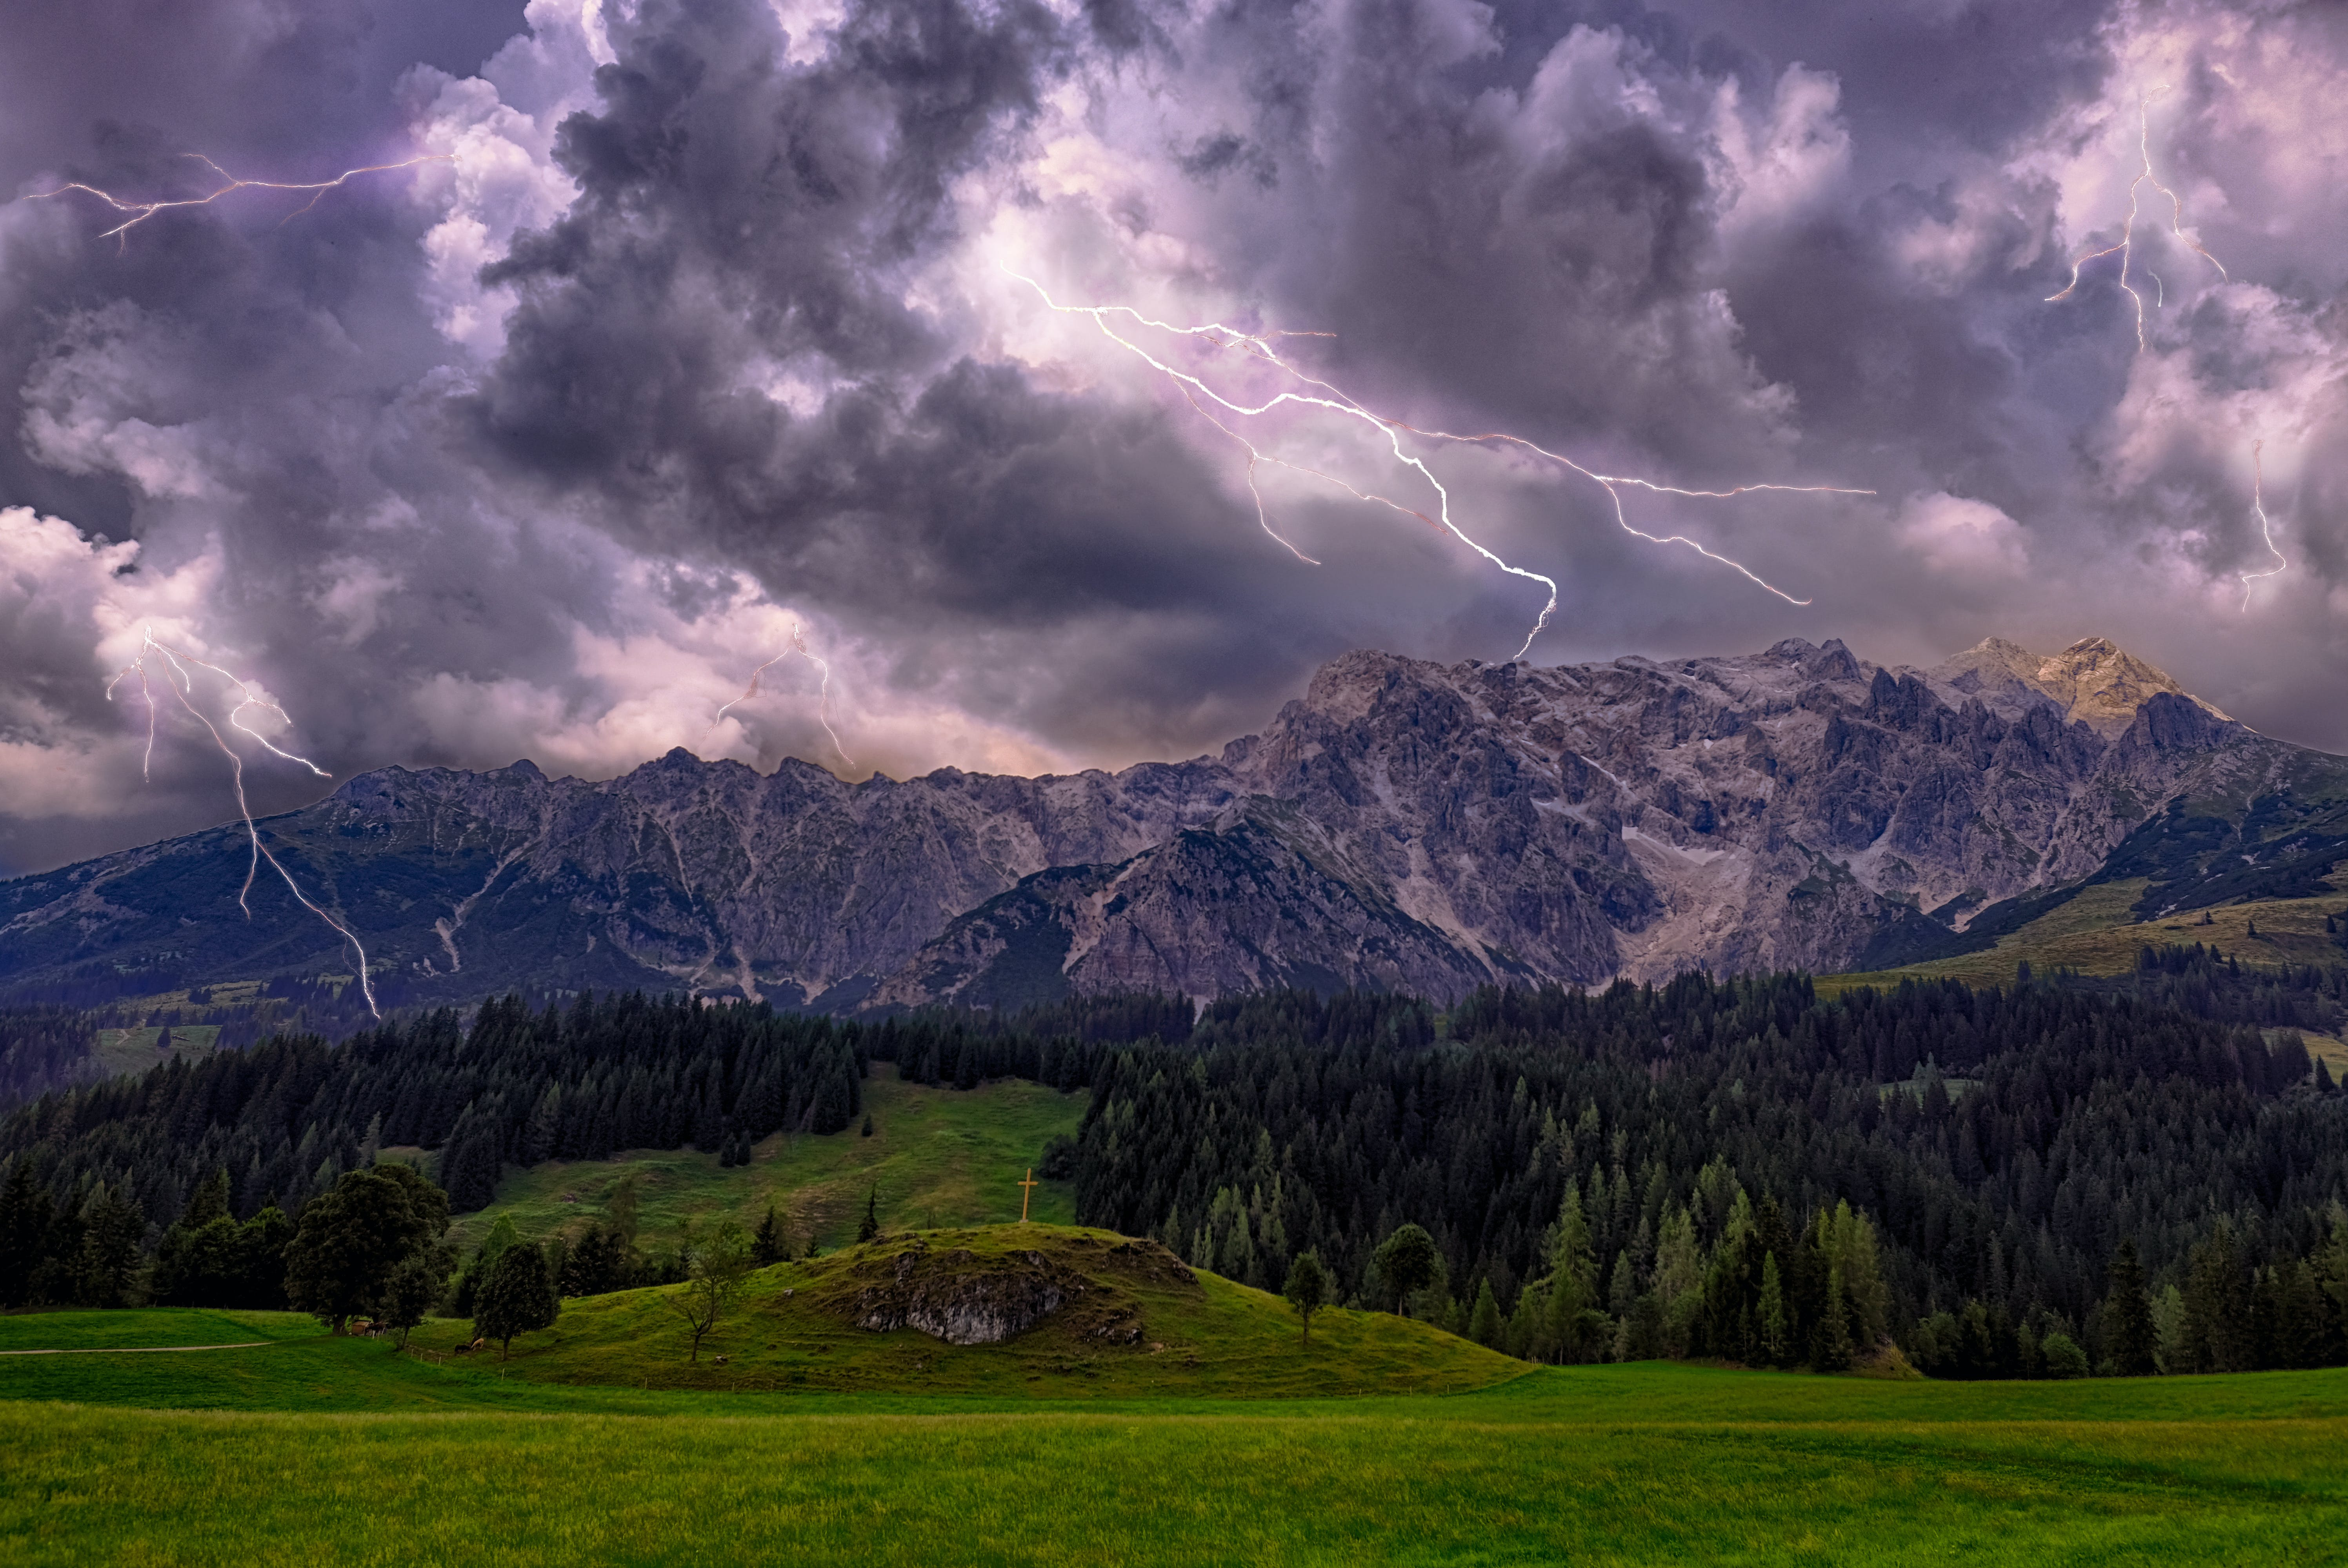 Time Lapse Photography Of Lightning And Clouds